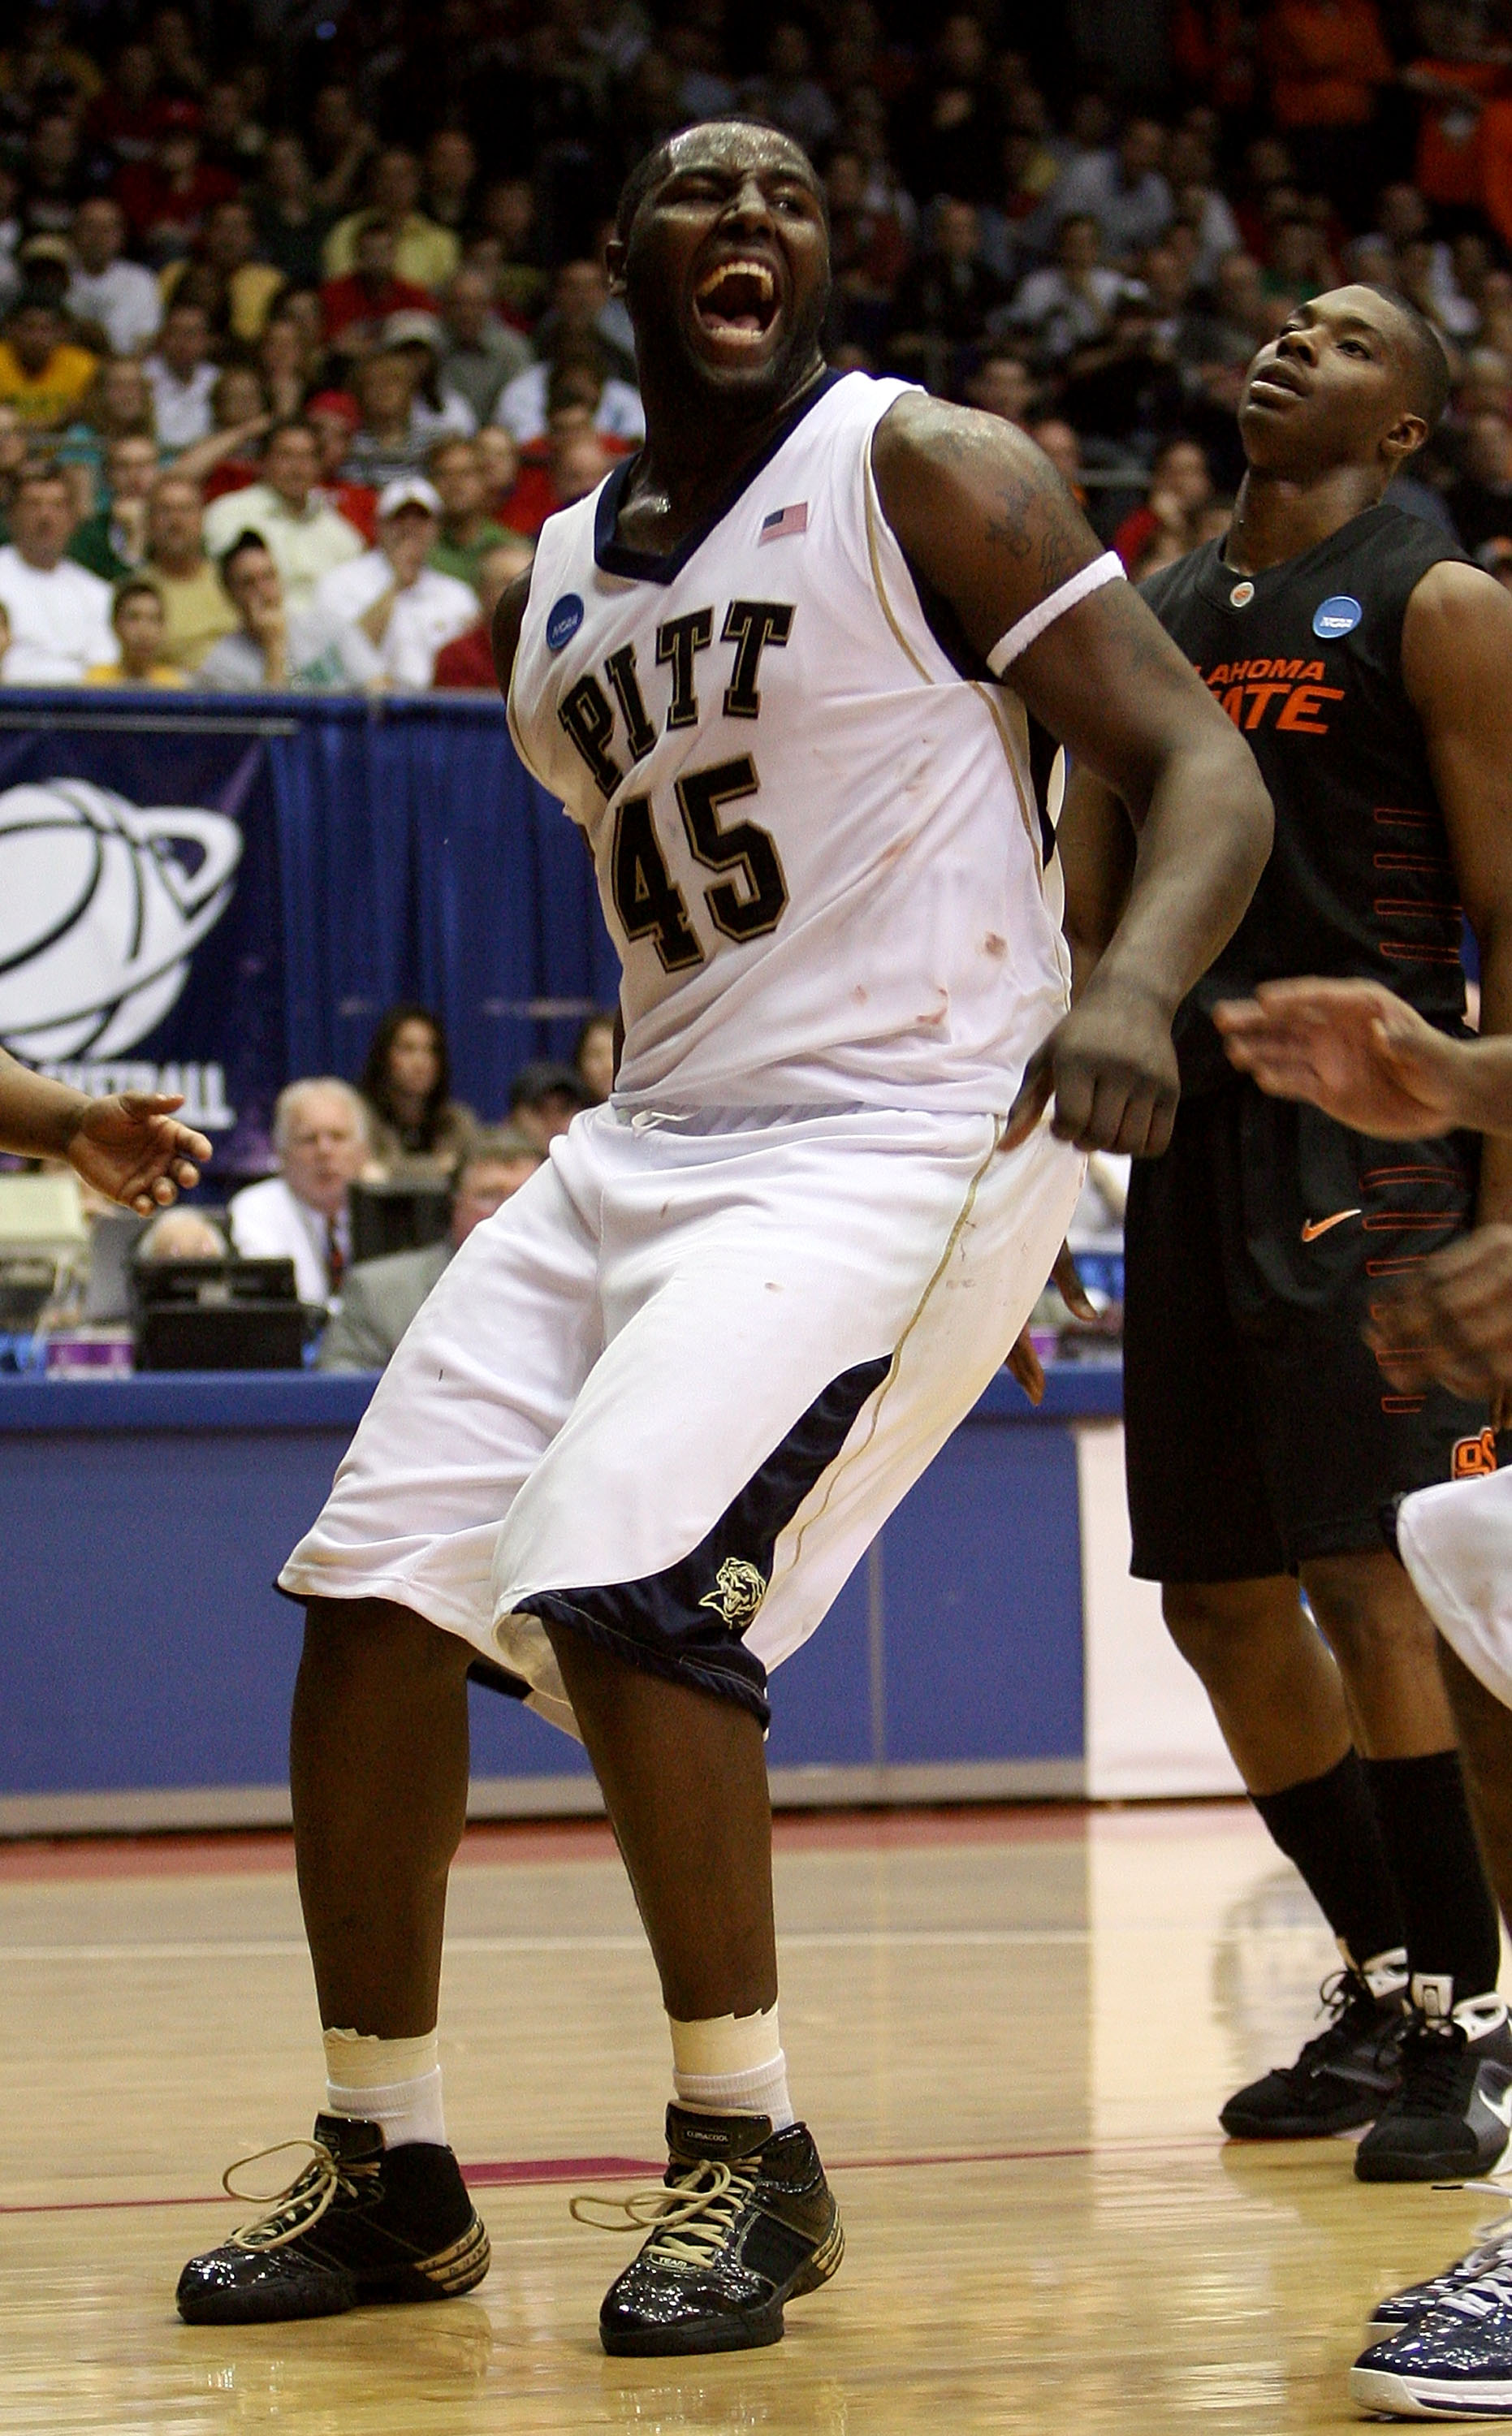 official photos 0f86d f0904 Pittsburgh Panthers Basketball: Team of the 2000's ...